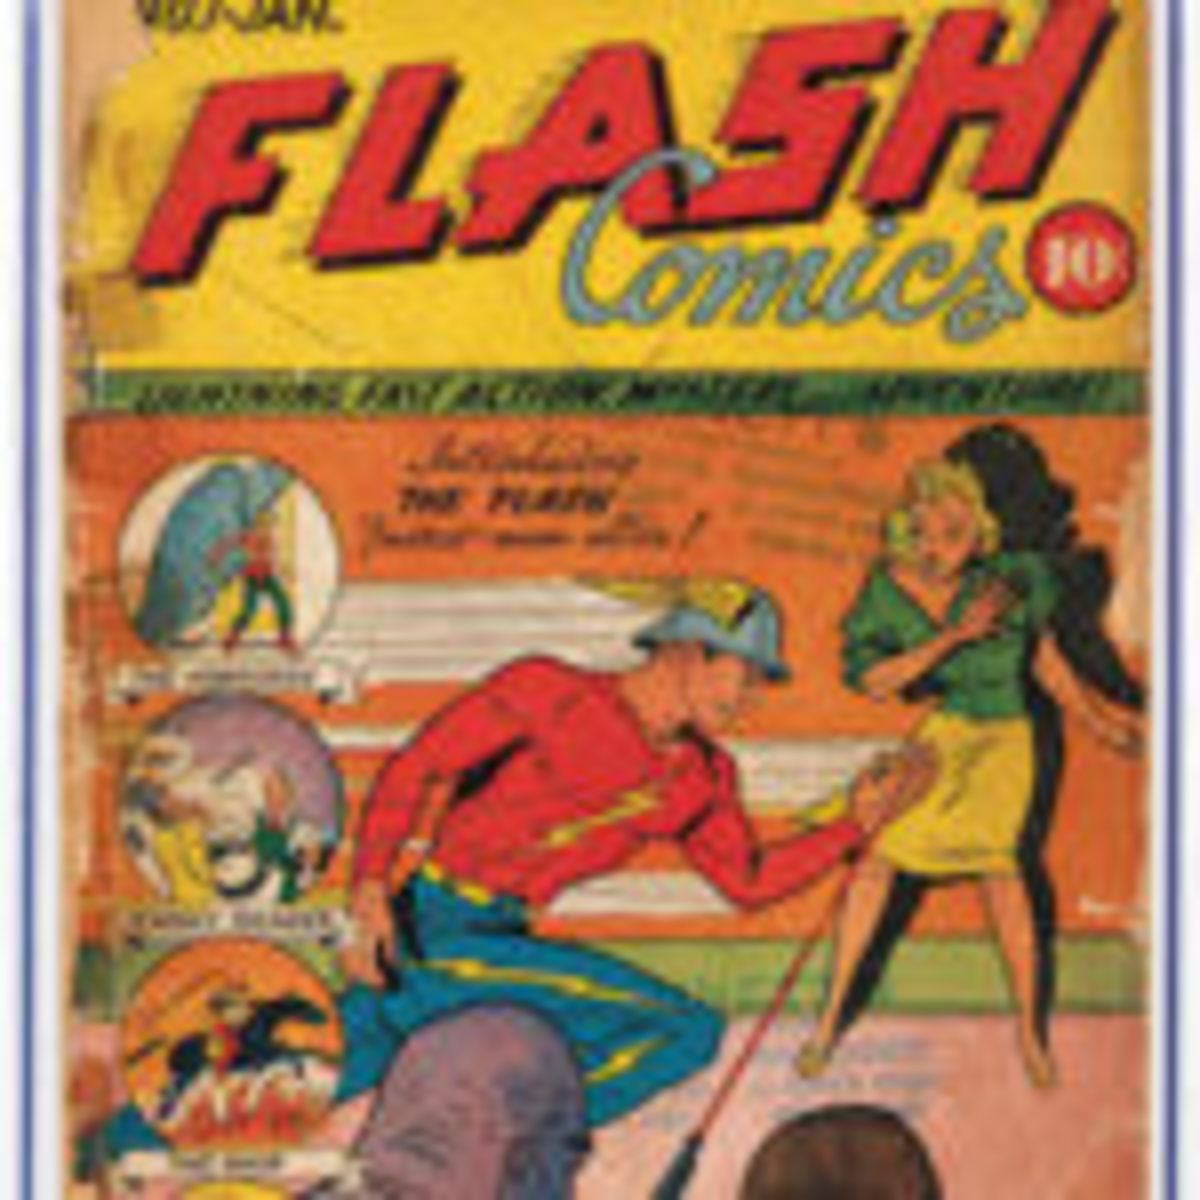 Flash Comics #1 (Jan. 1940), debut appearance of Flash, Hawkman, Johnny Thunder and Shiera Saunders (aka Hawkgirl), CGC-graded 0.5. Extremely rare in any condition. Est. $20,000-$35,000